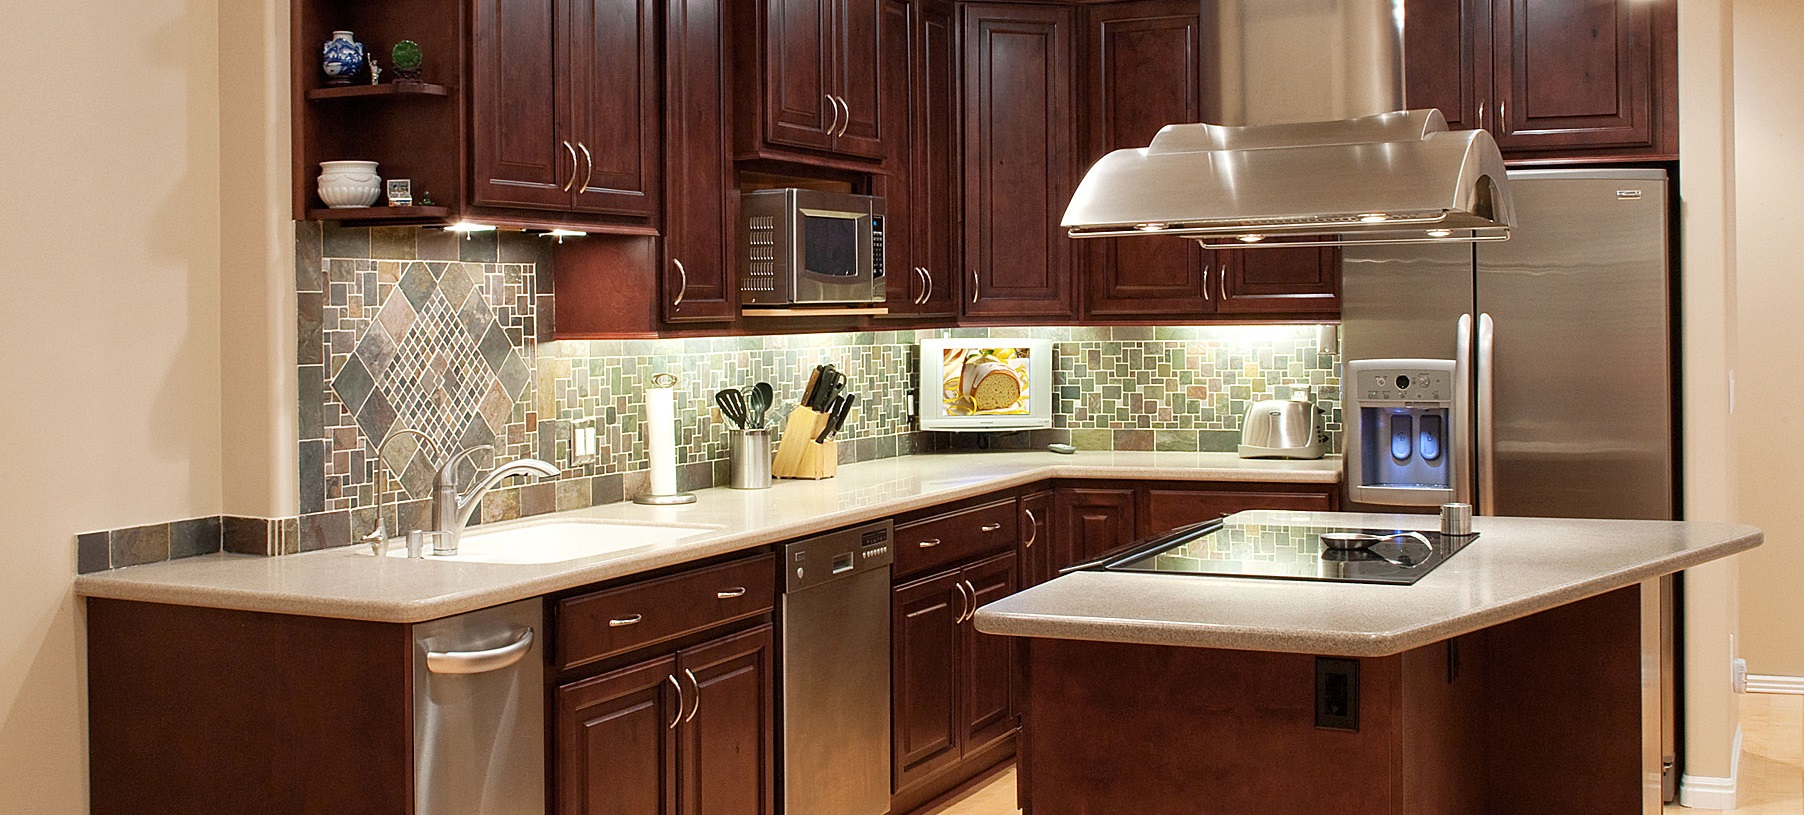 Kitchen Cabinets Utah mahogany | salt lake city, utah | awa kitchen cabinets